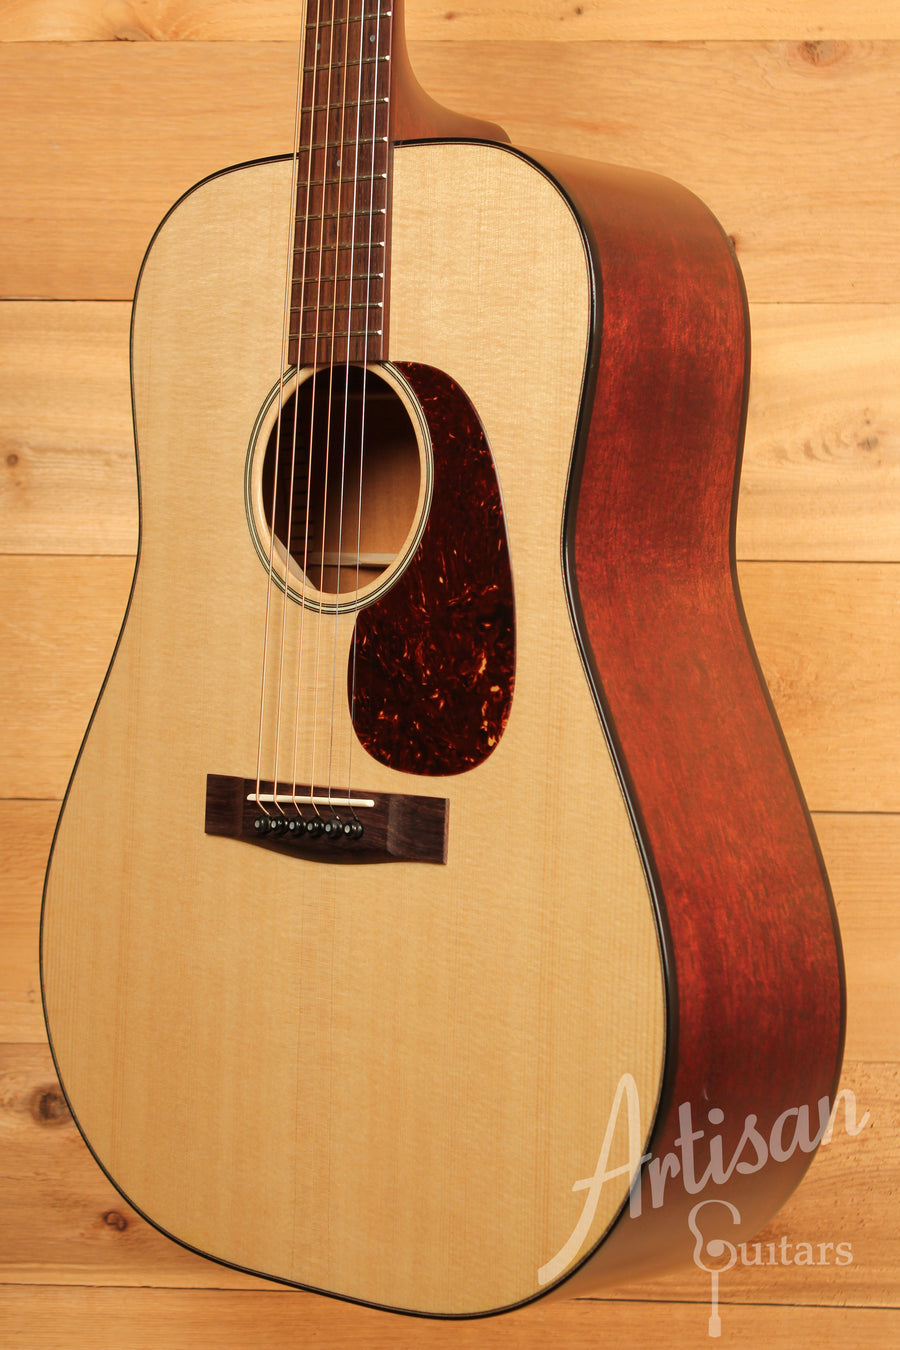 Huss and Dalton Road Edition Dreadnought Sitka Spruce and Mahogany ID-11386 - Artisan Guitars